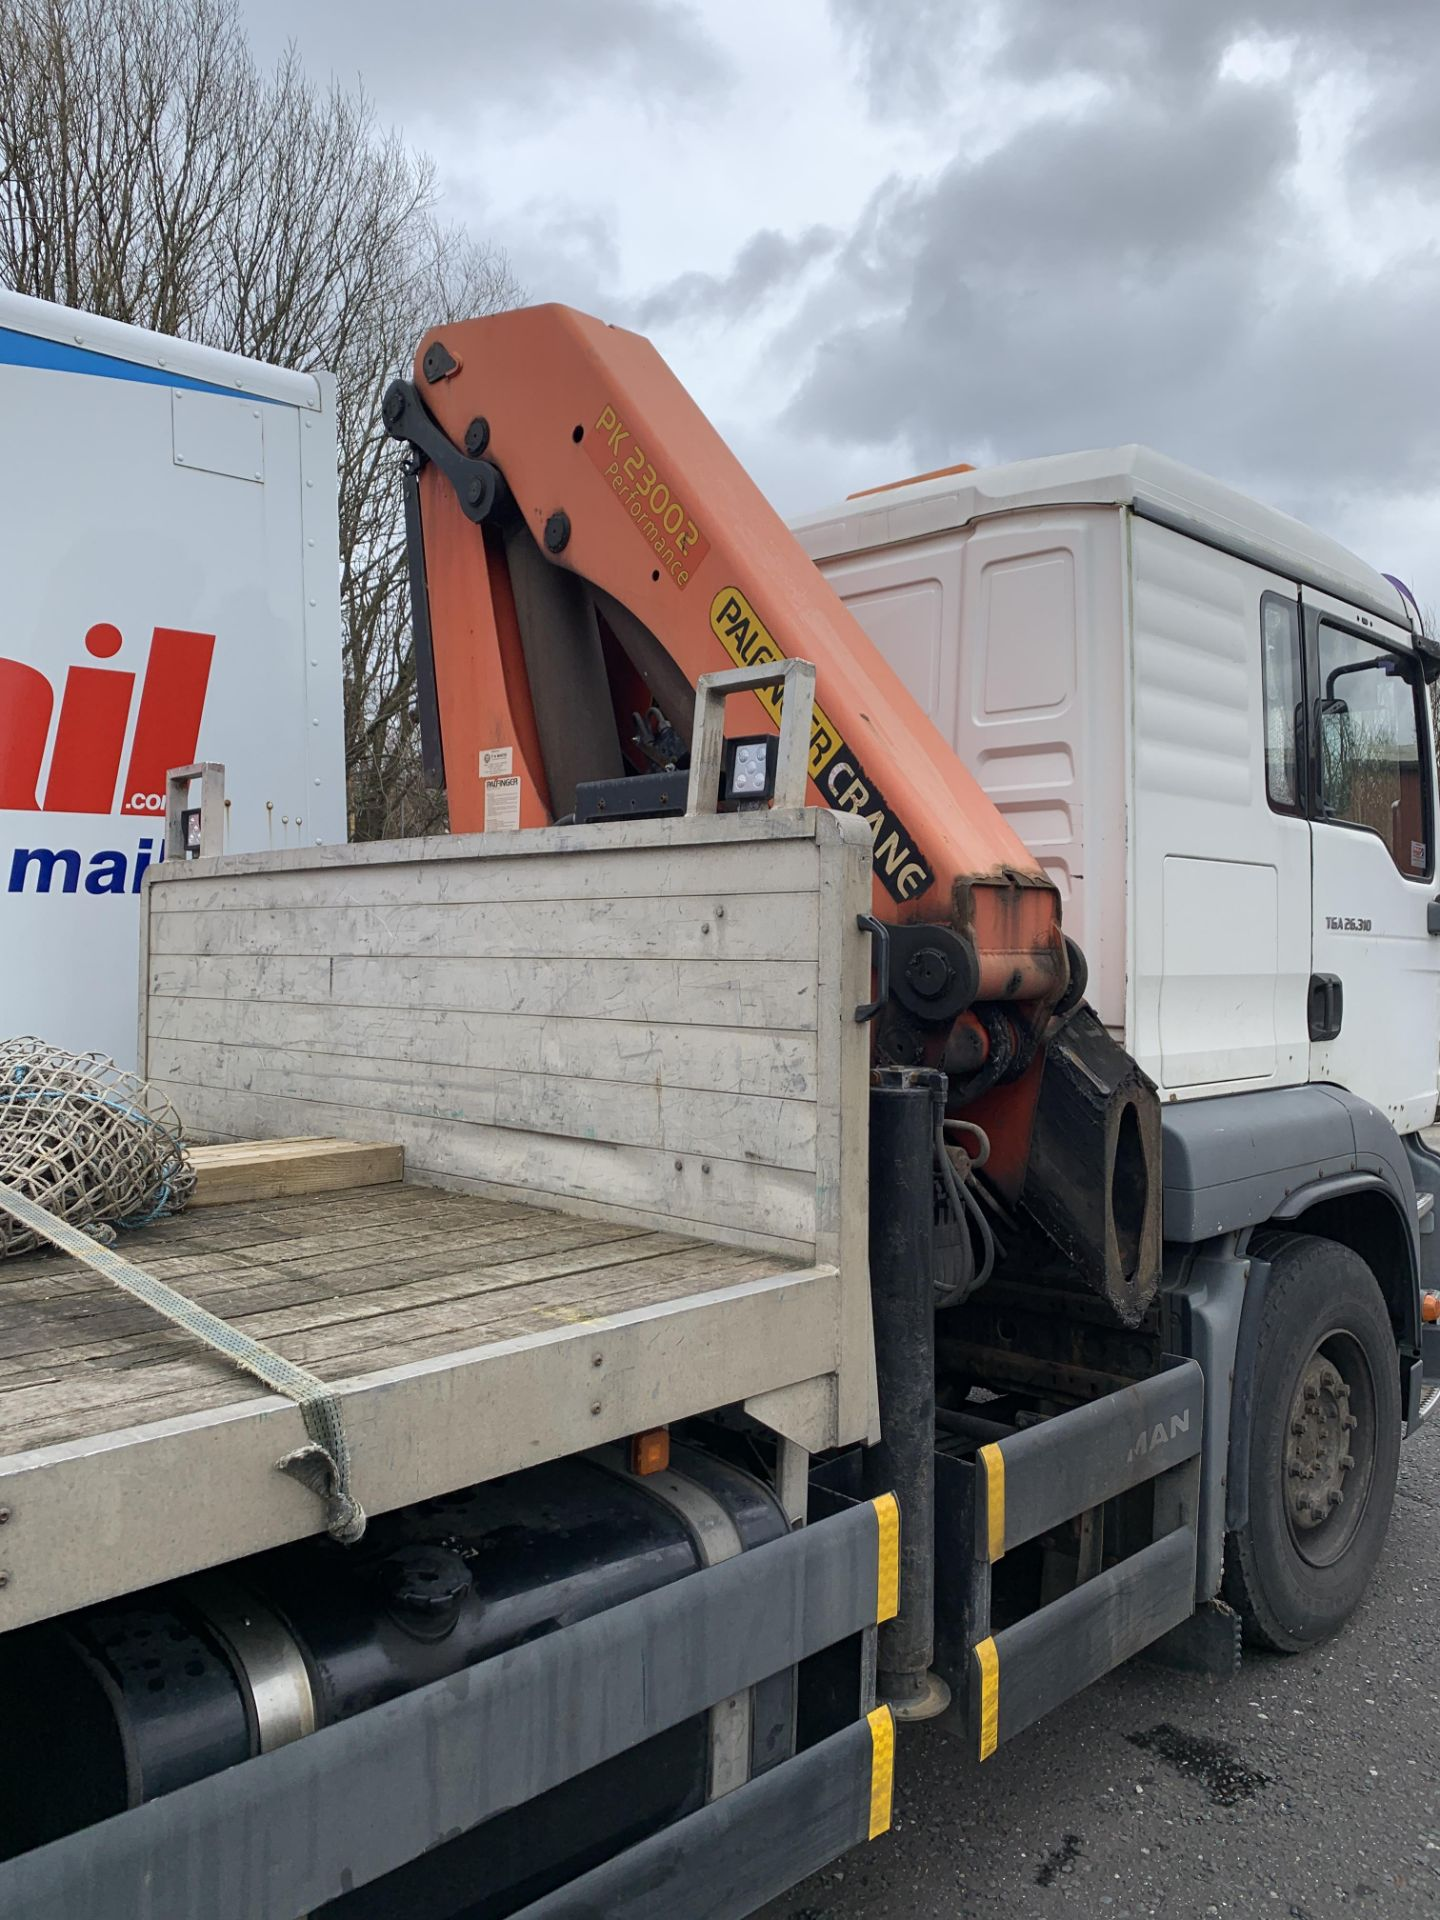 Lot 1 - MAN TGA 26.310 Flatbed Lorry with Palfinger PK23002 Crane. 26,000KG Gross Weight.